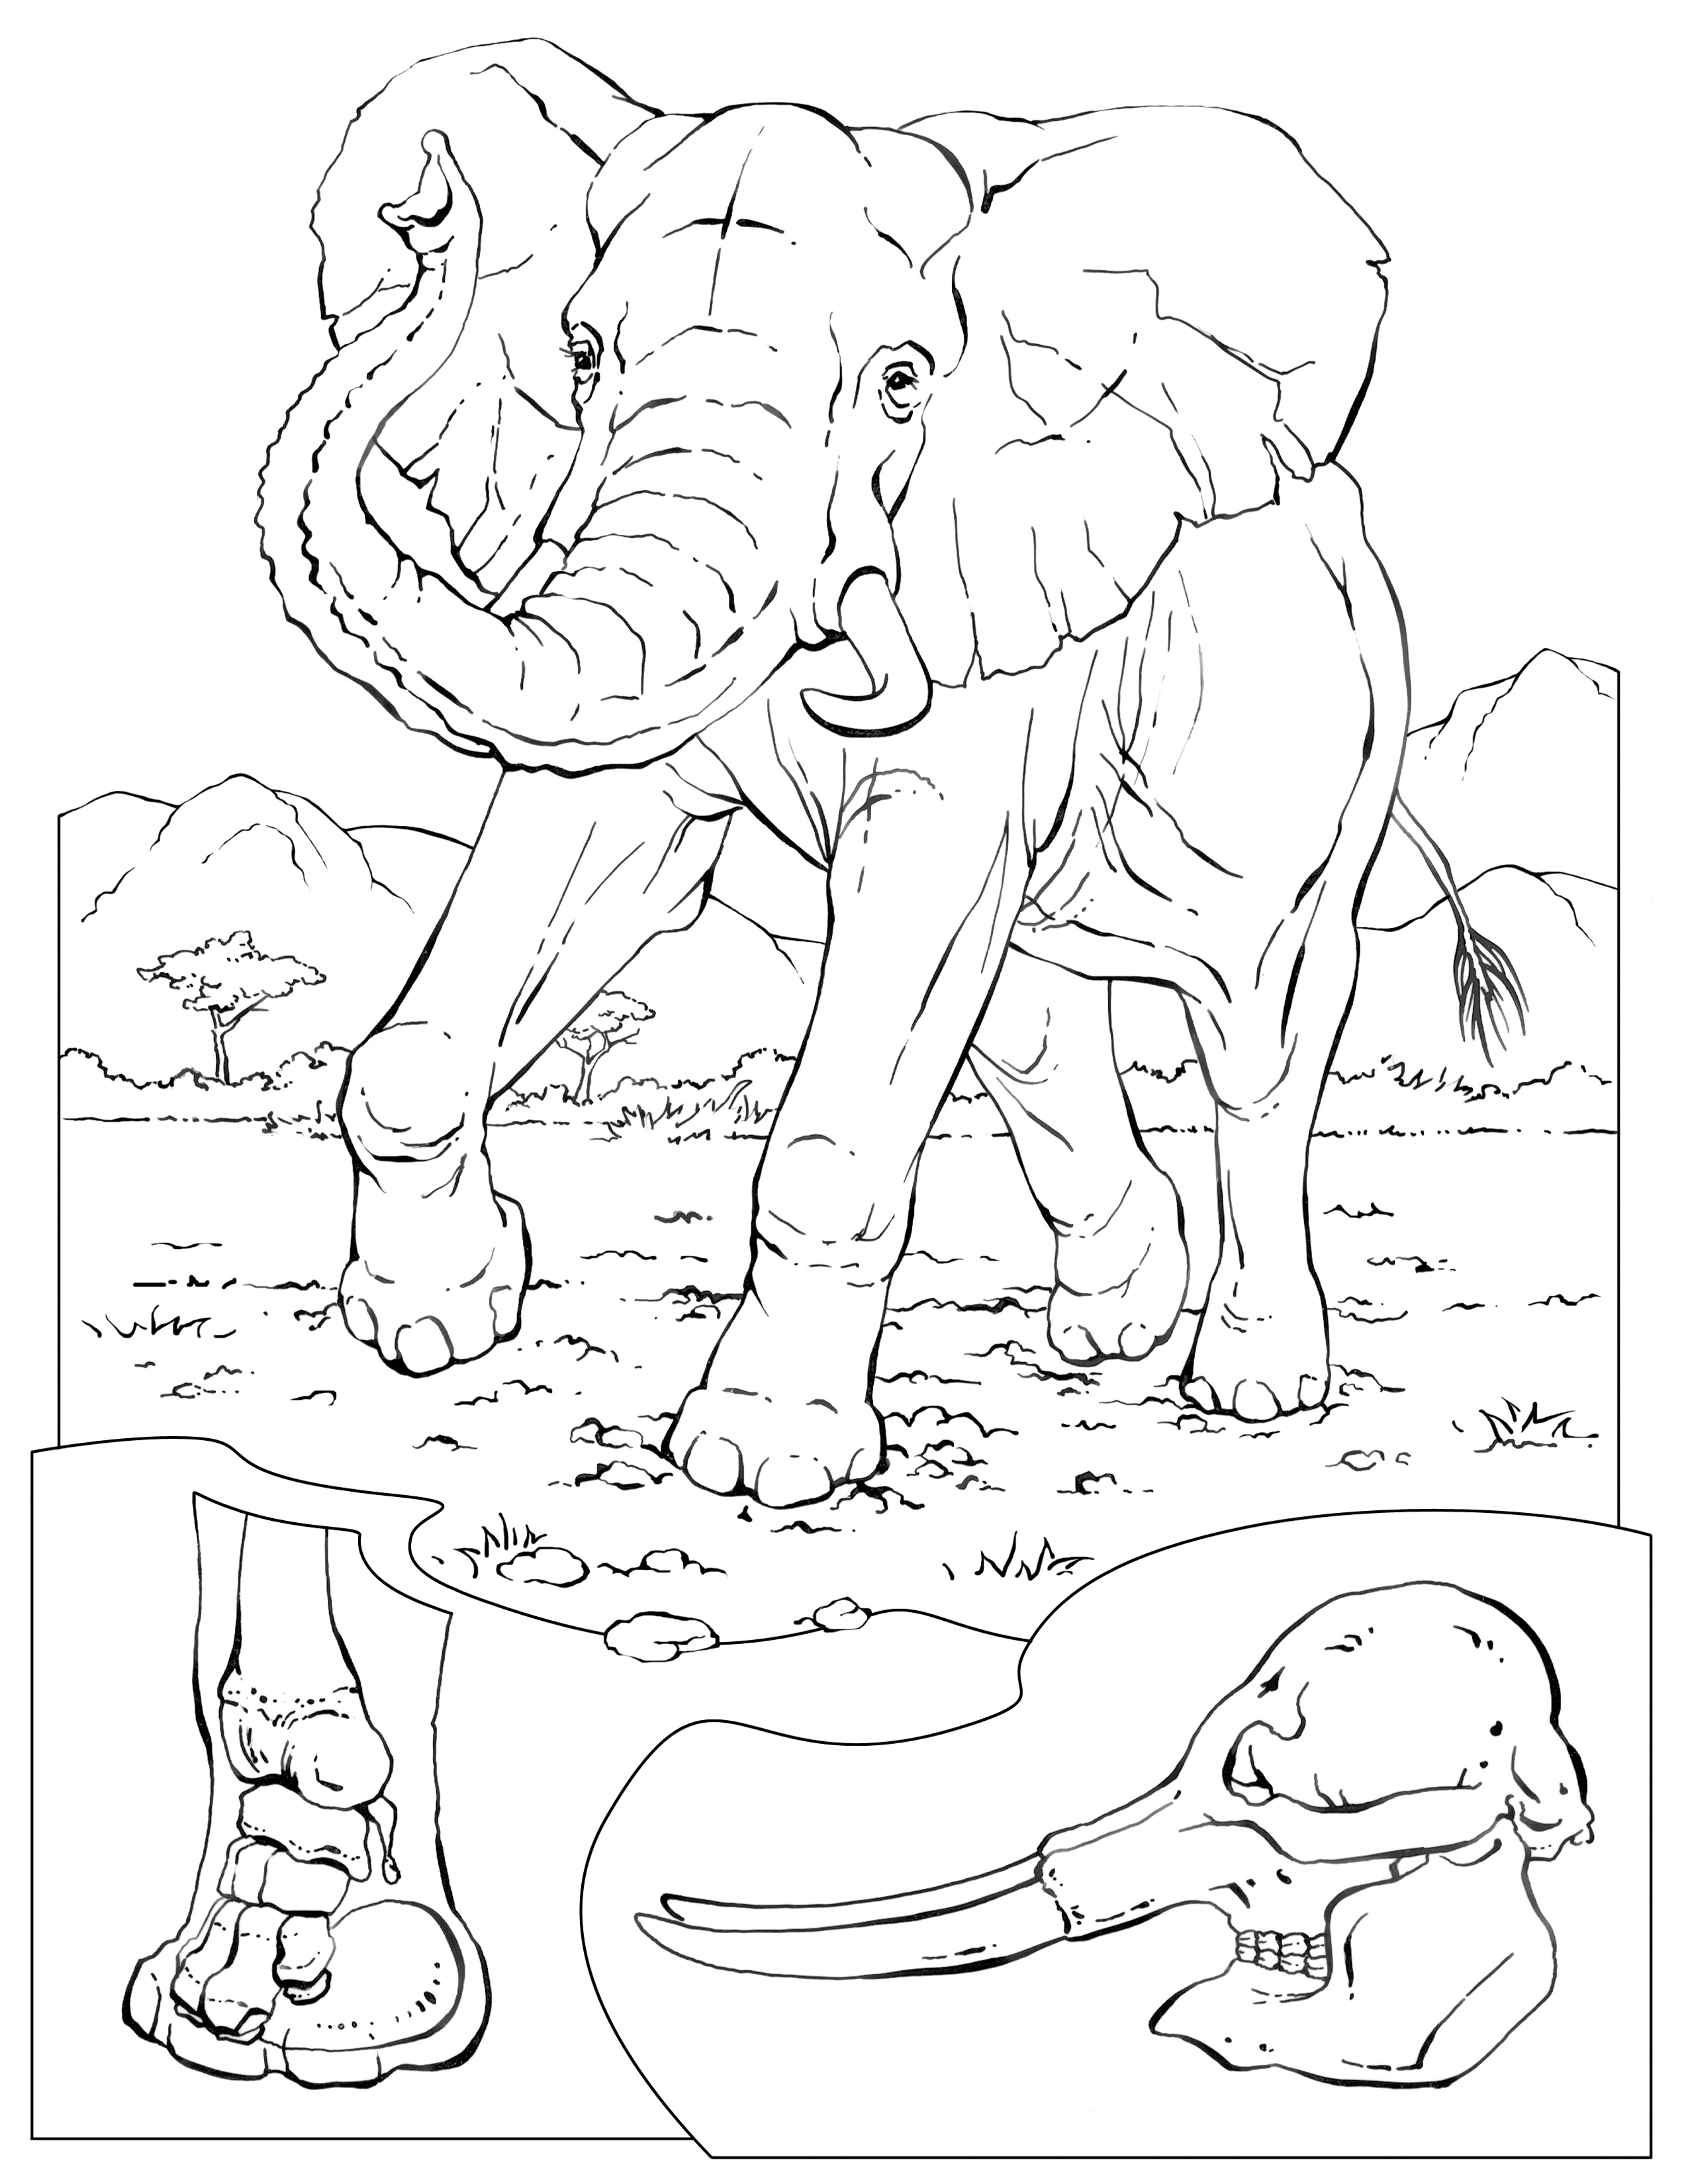 printable elephant coloring pages elephant face coloring pages at getcoloringscom free elephant coloring pages printable